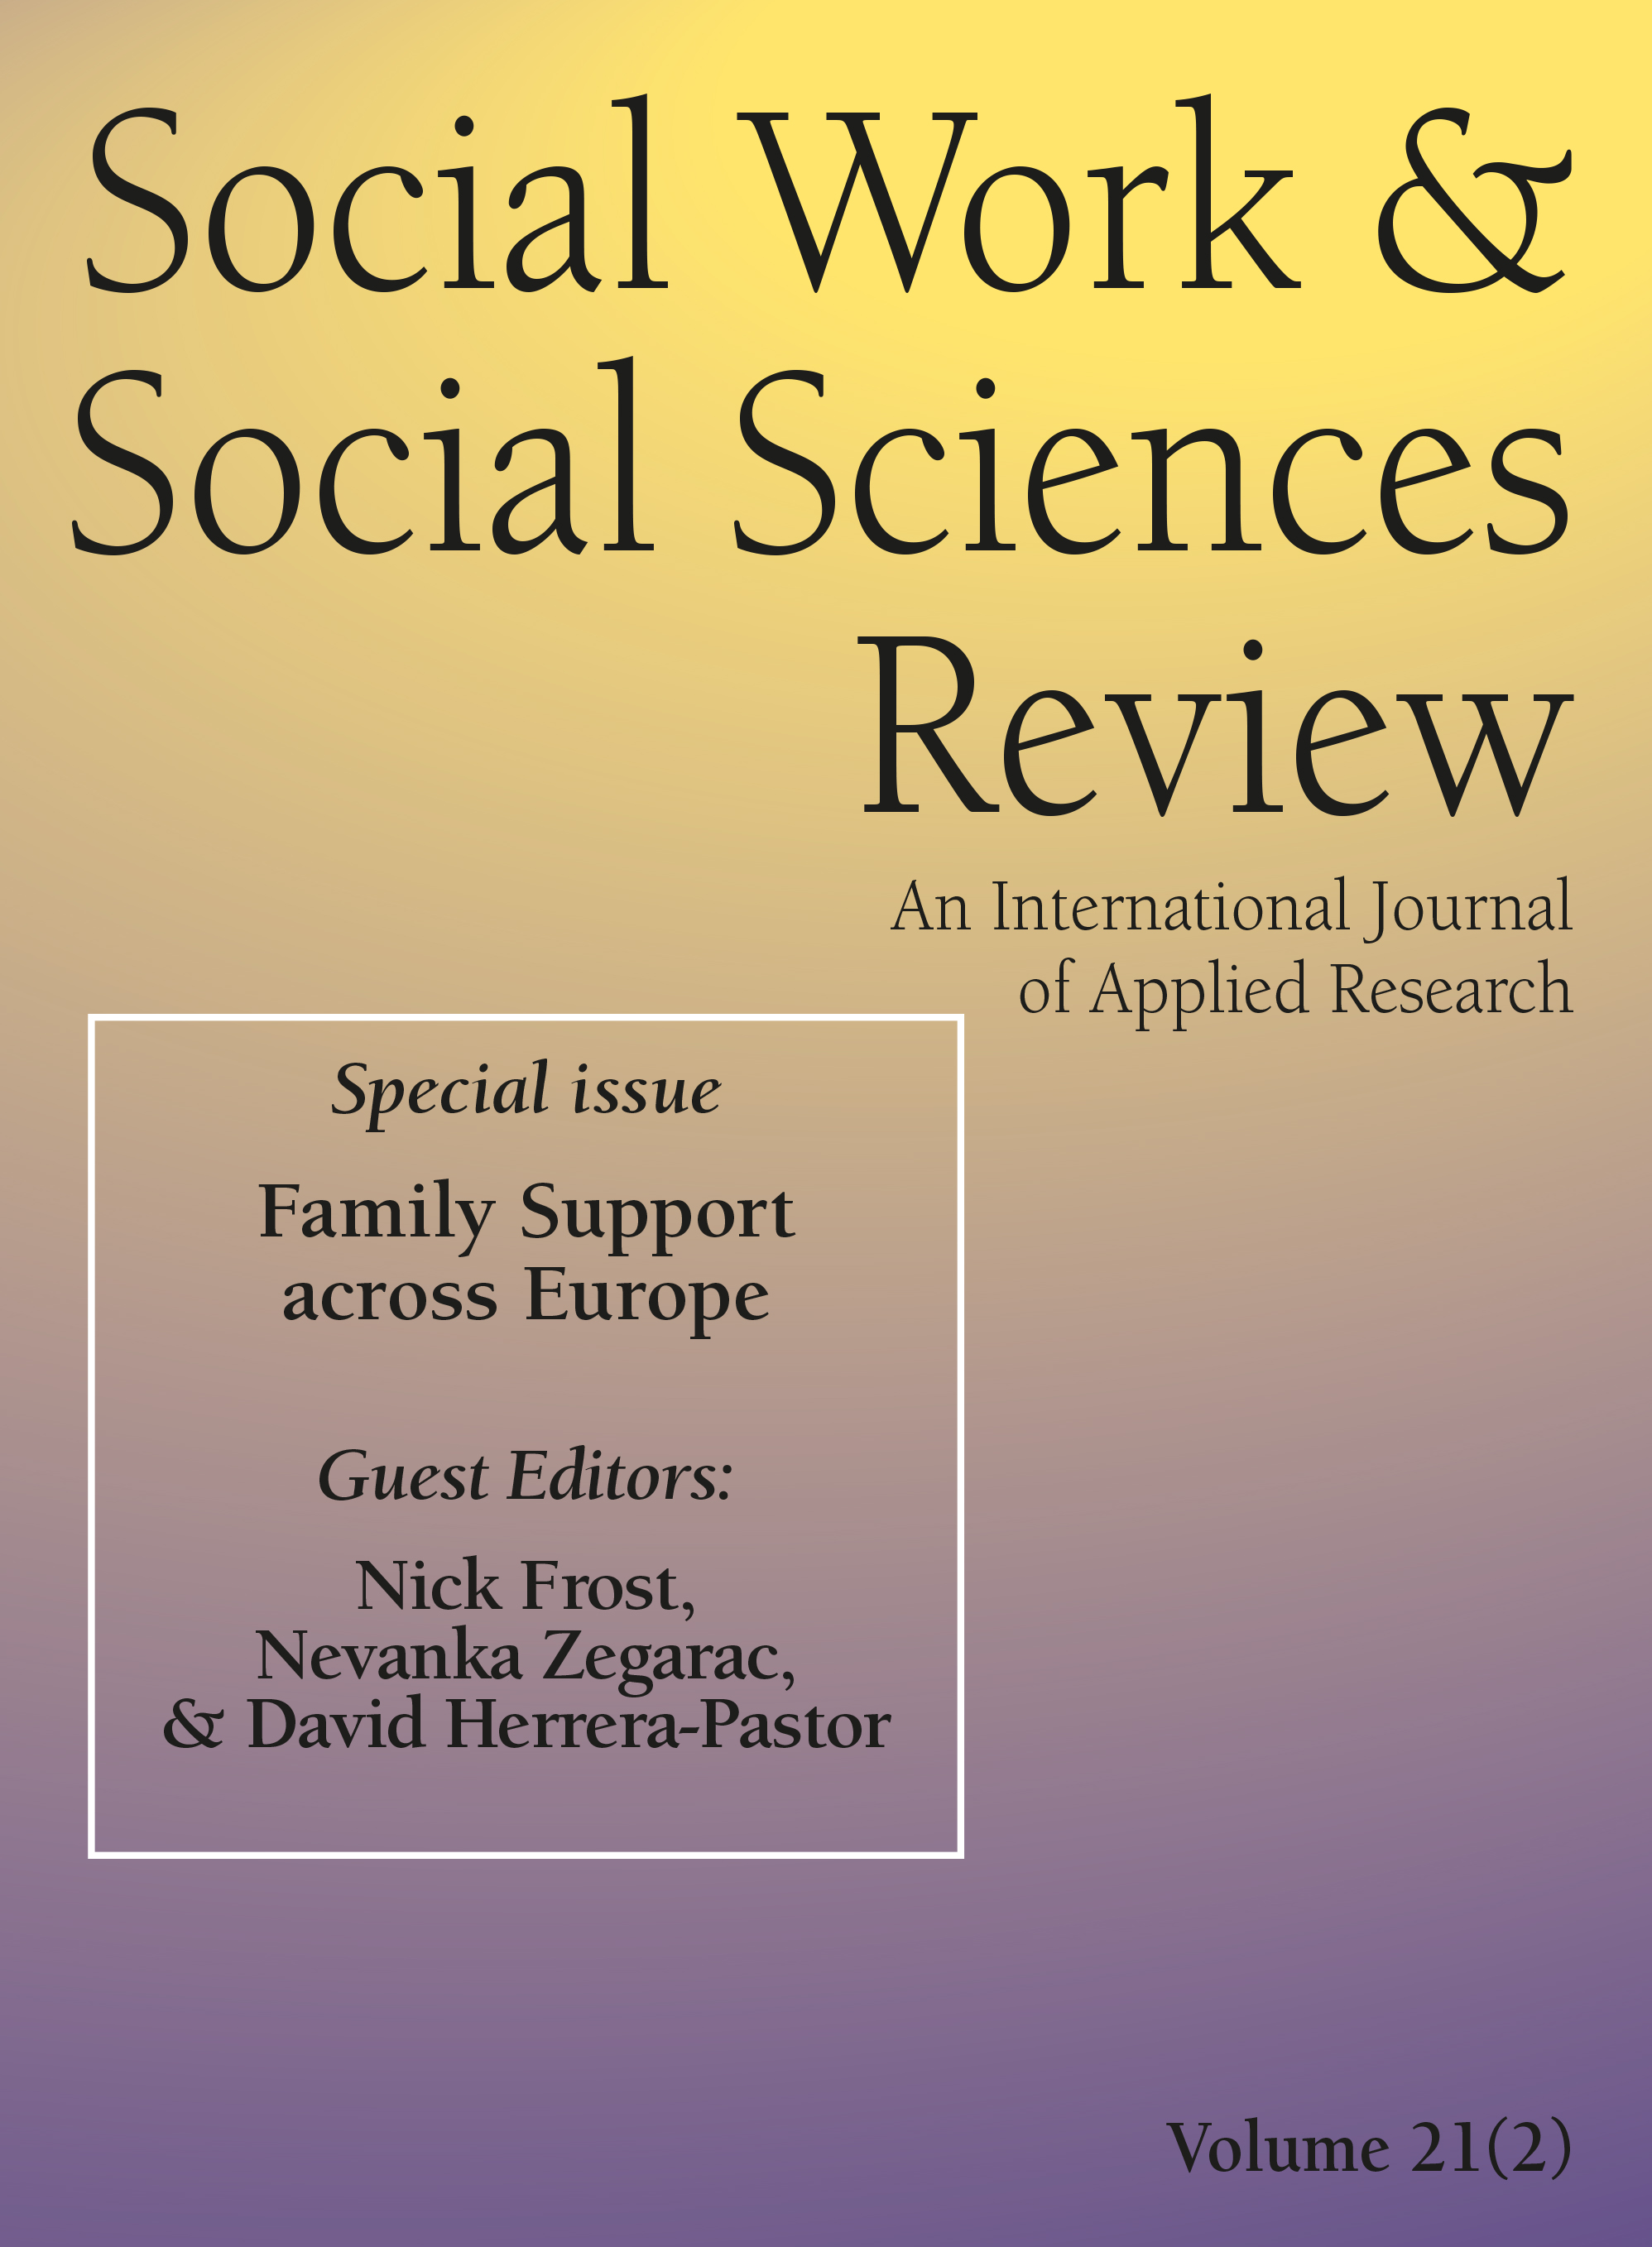 Cover of Social Work & Social Sciences Review